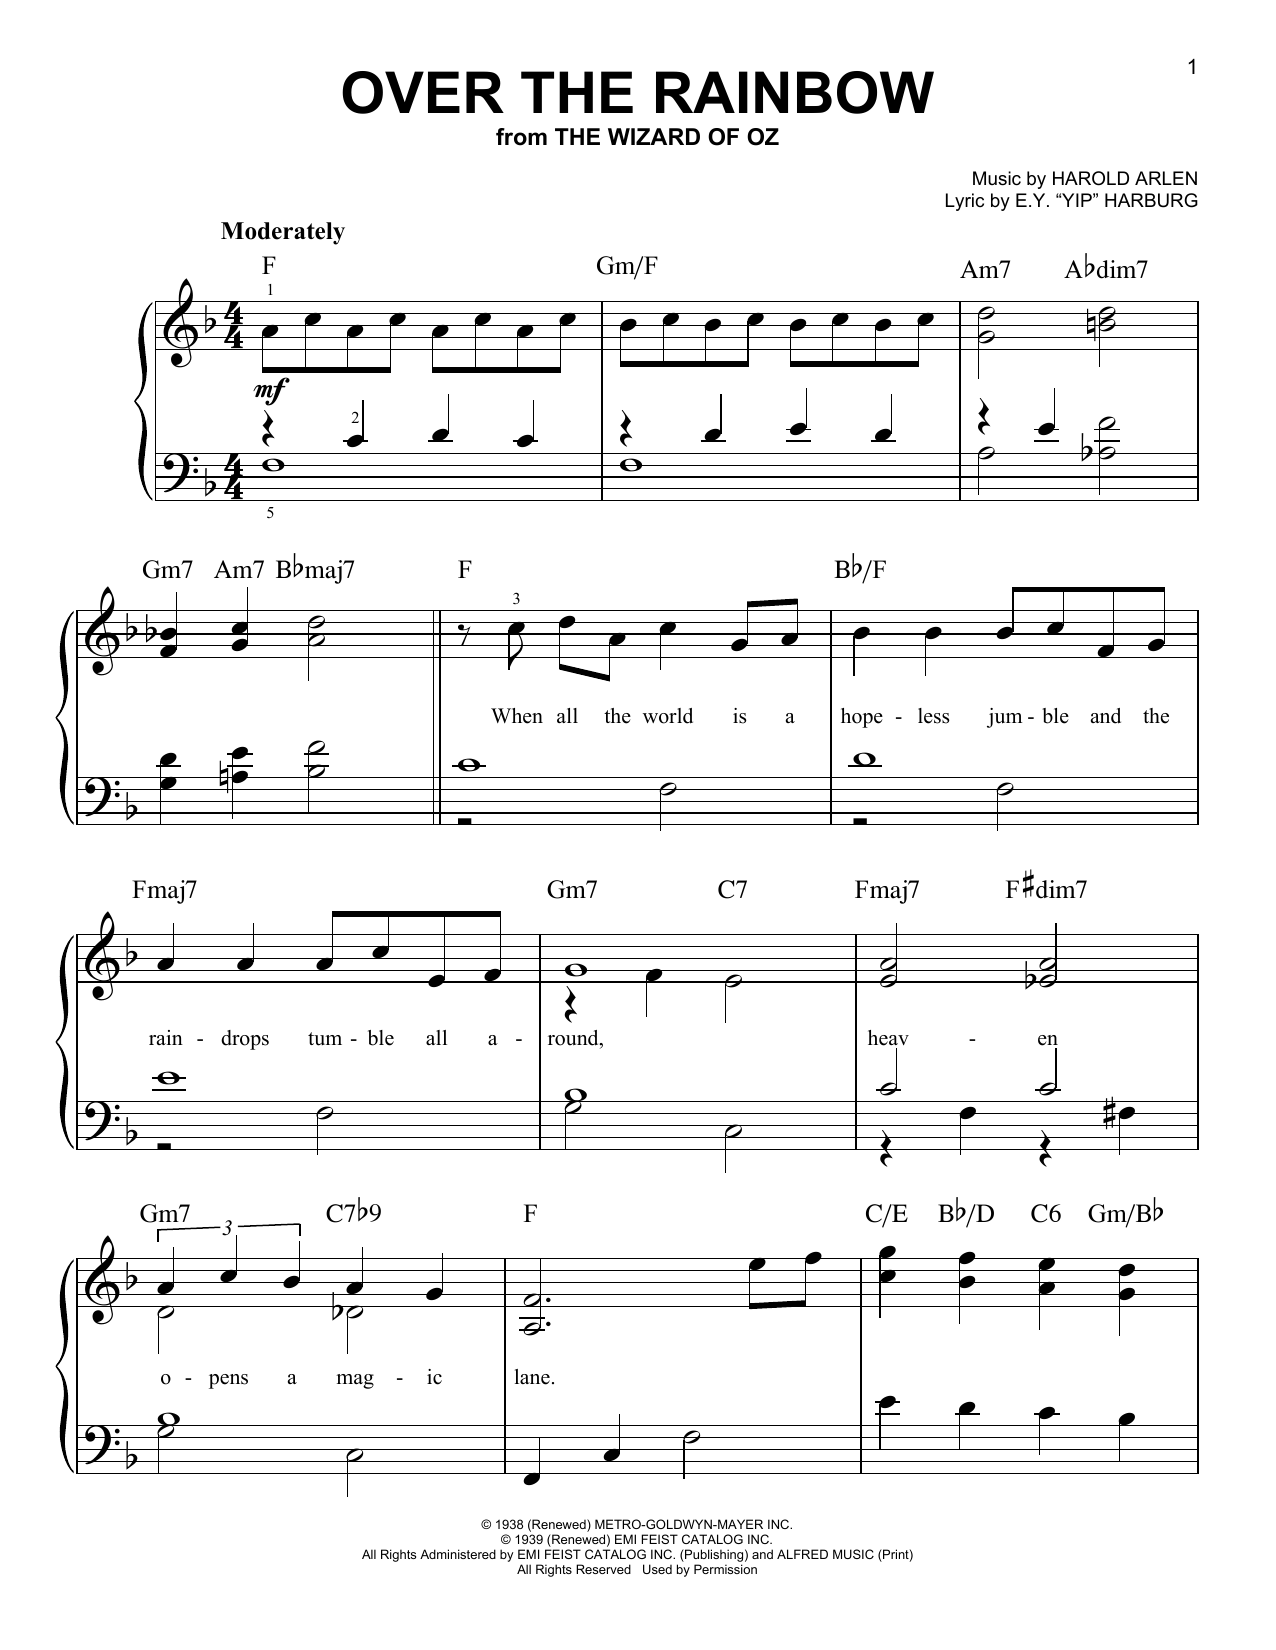 Over The Rainbow : Sheet Music Direct